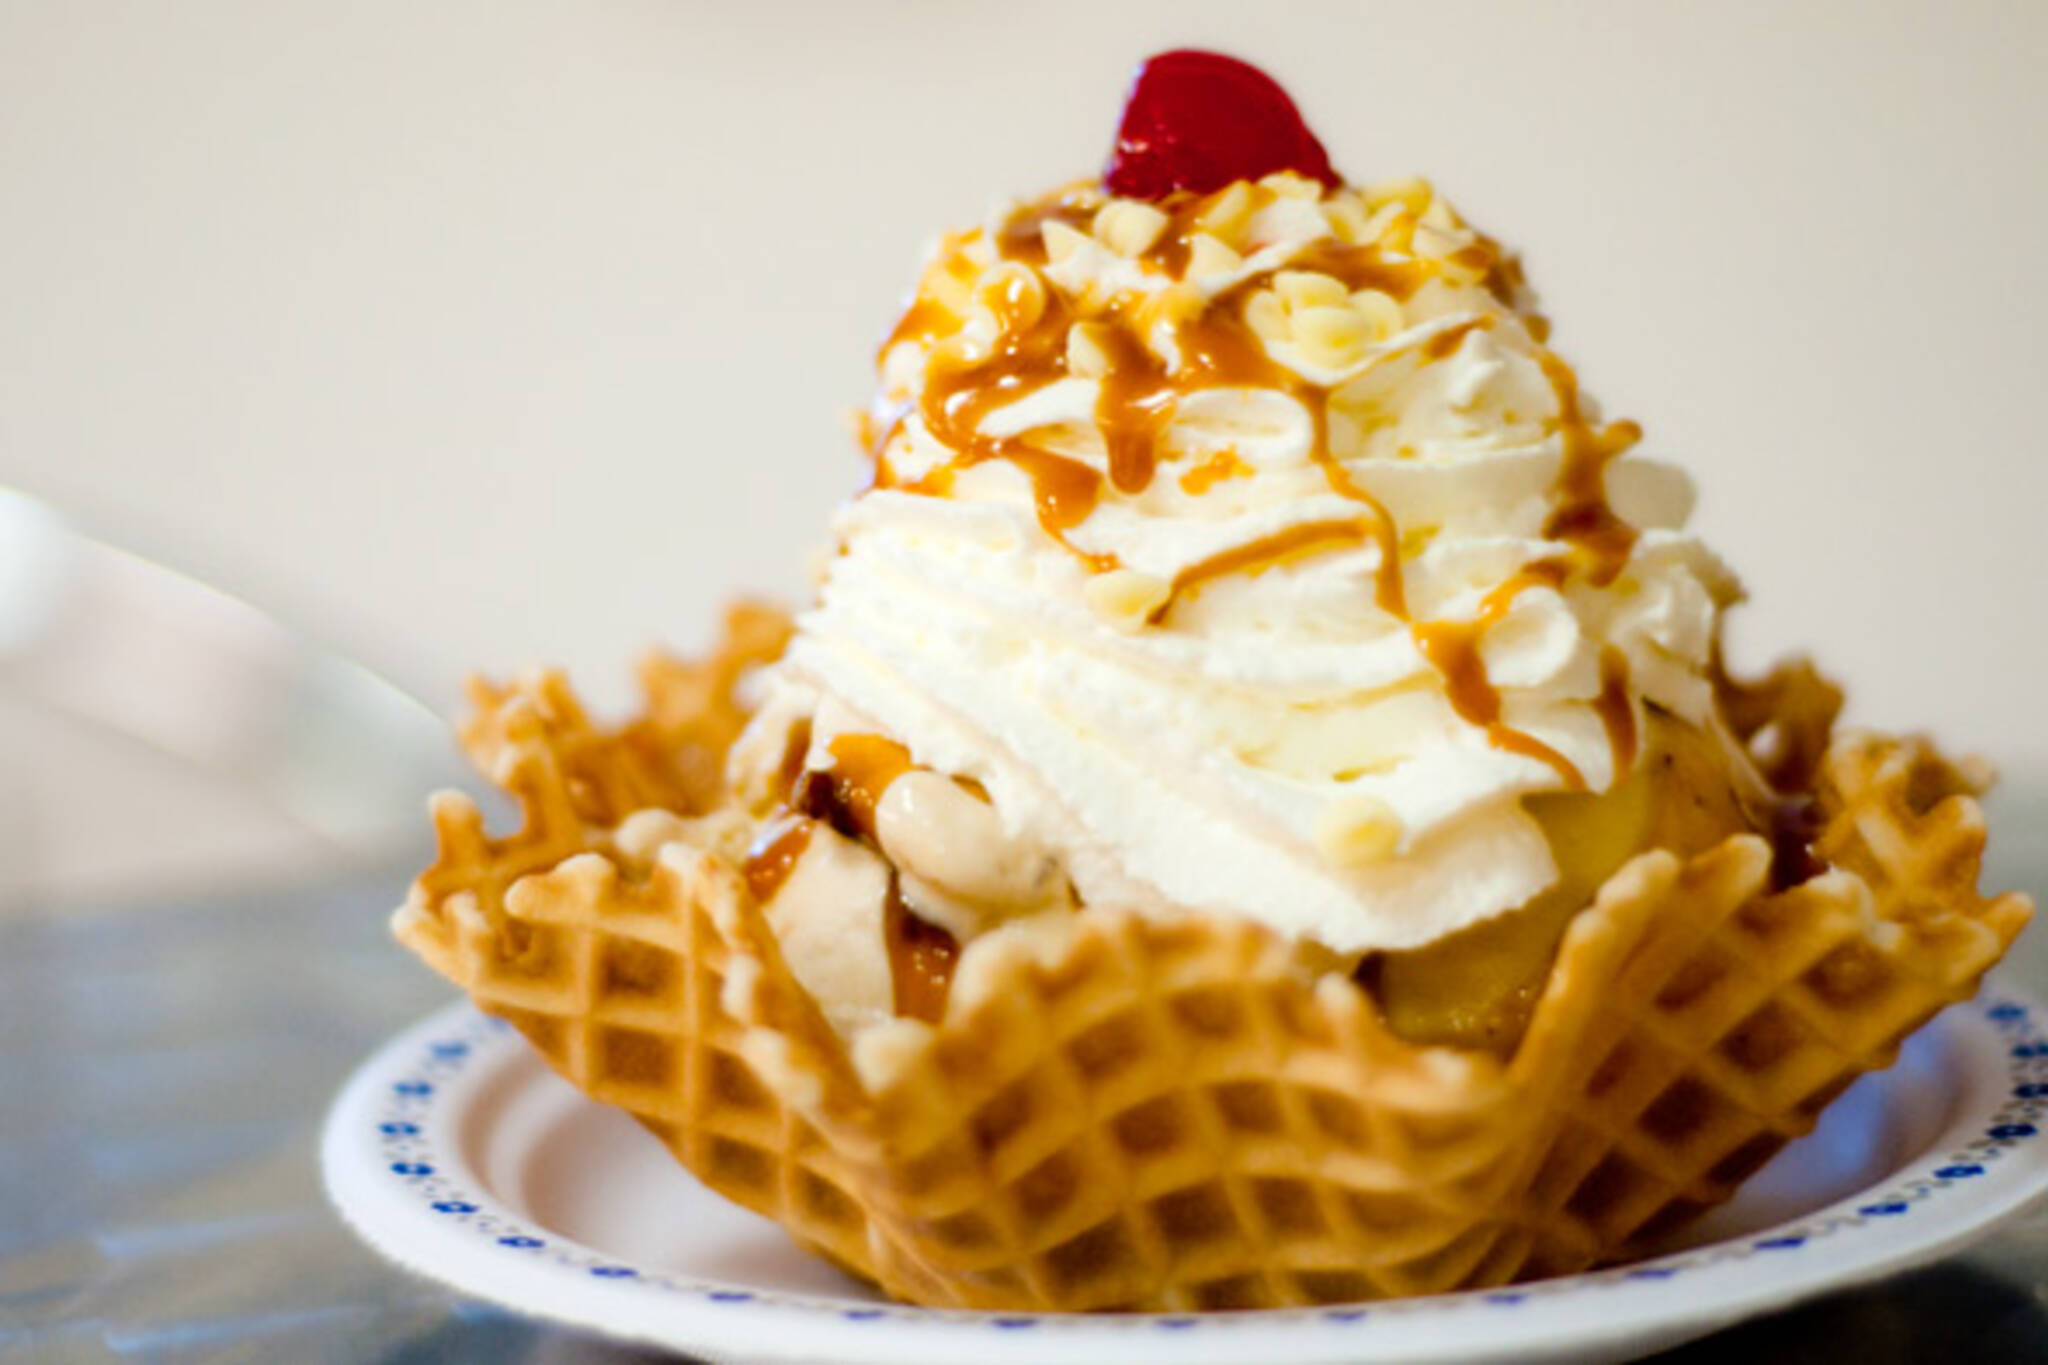 The Great Toronto Sundae Challenge: Sweet Creamery